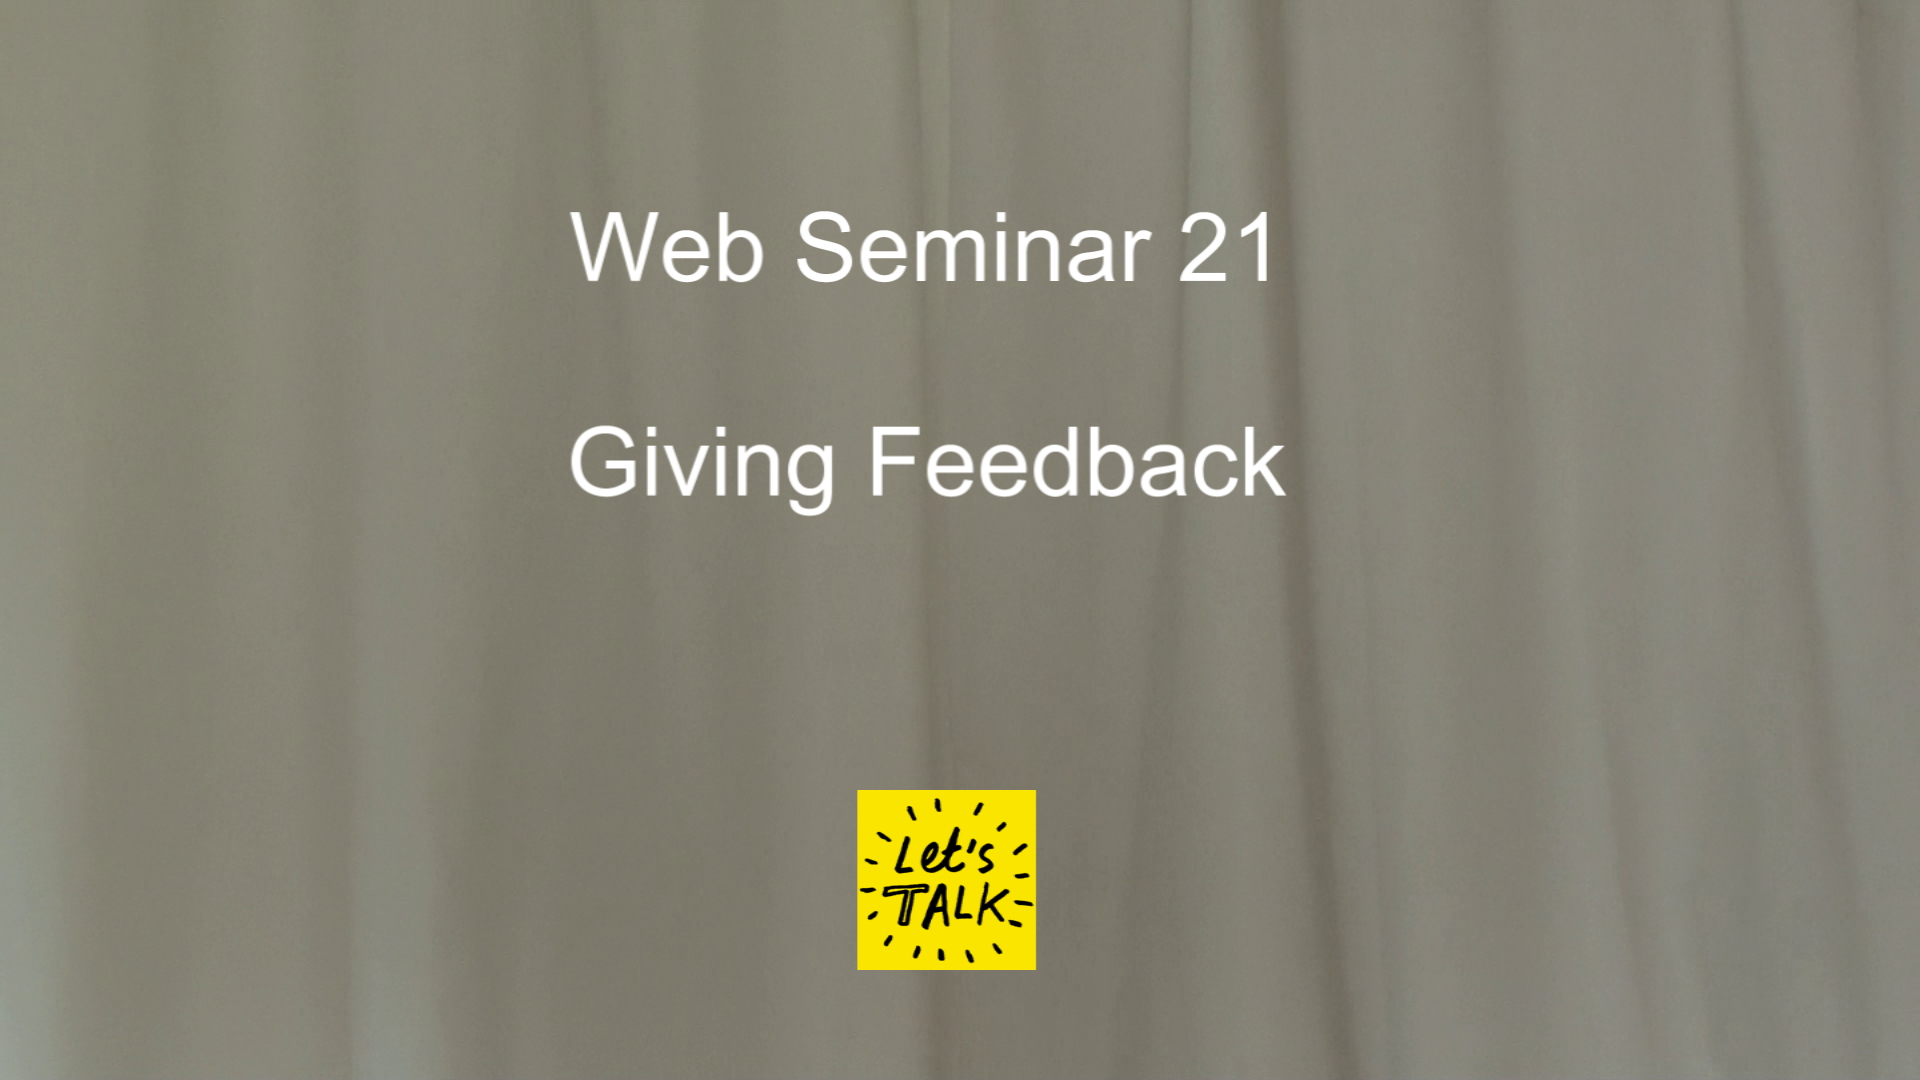 Web Seminar 21 - Giving Feedback